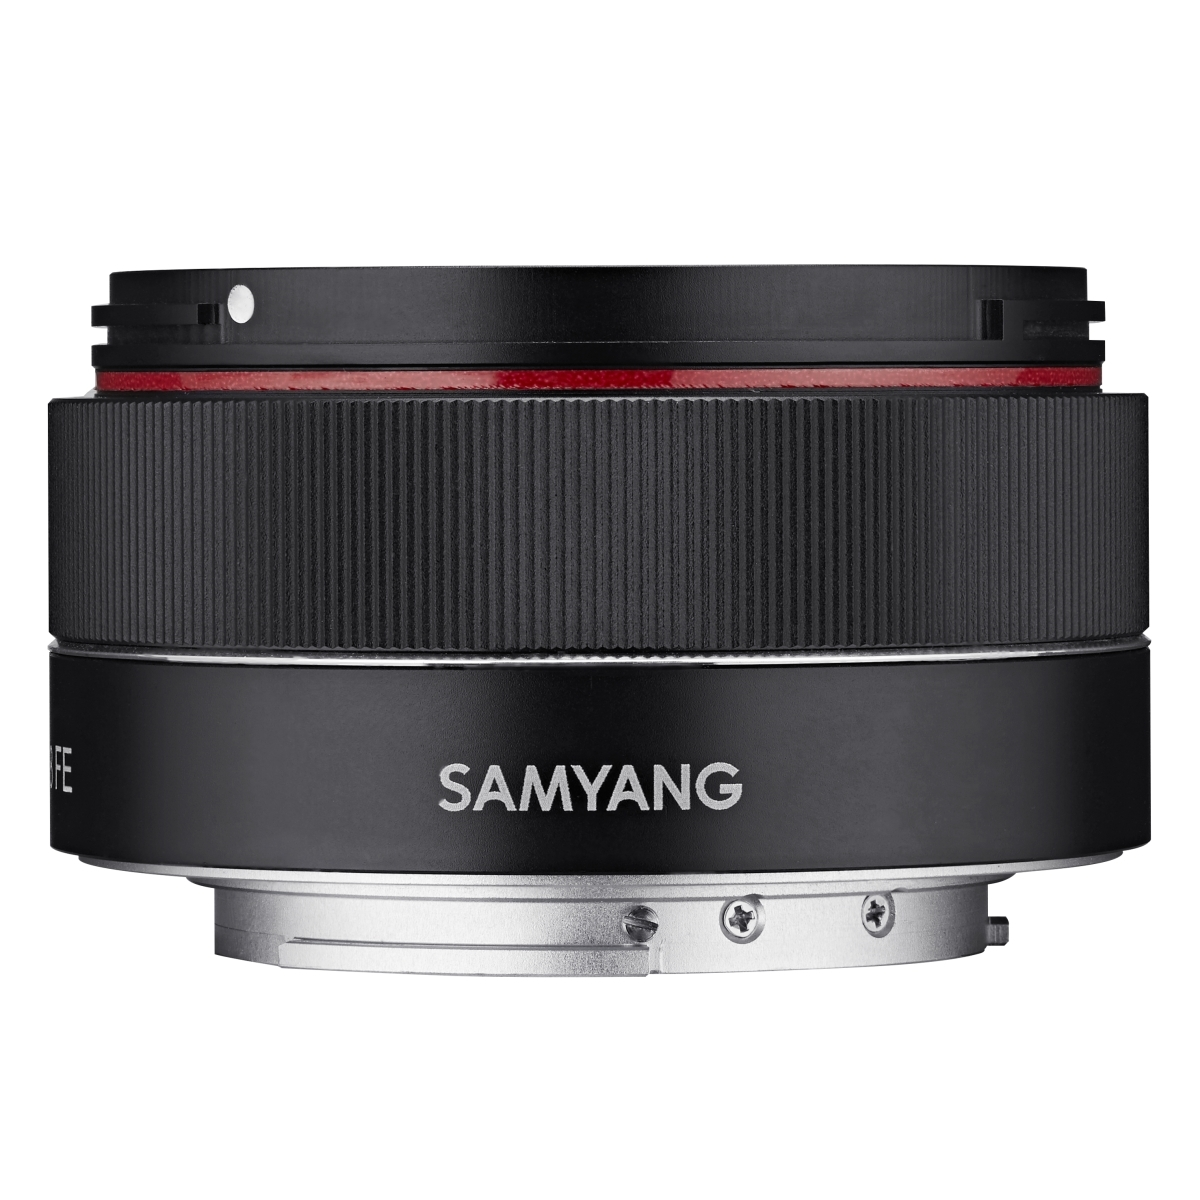 Samyang AF 35mm F2.8 FE für Sony E - Tiny but Mighty